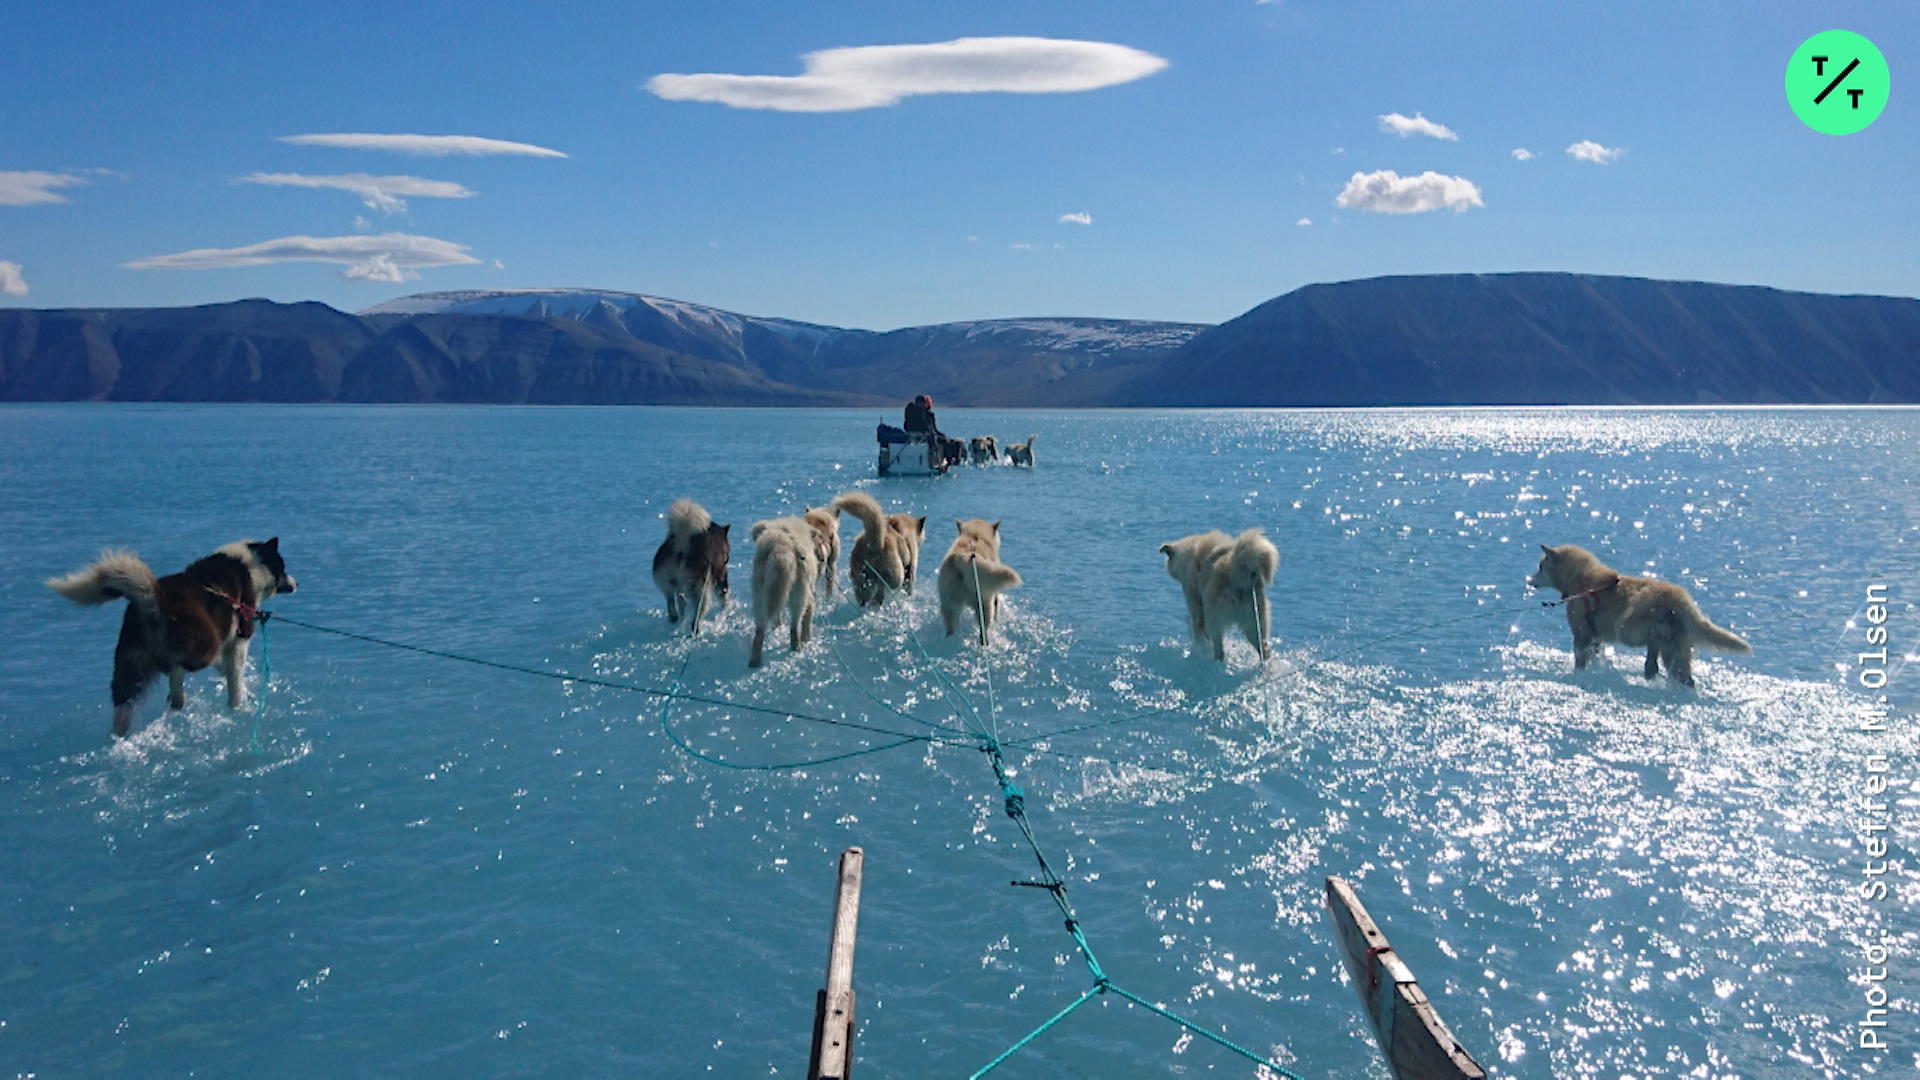 Are These Dogs Walking on Water?